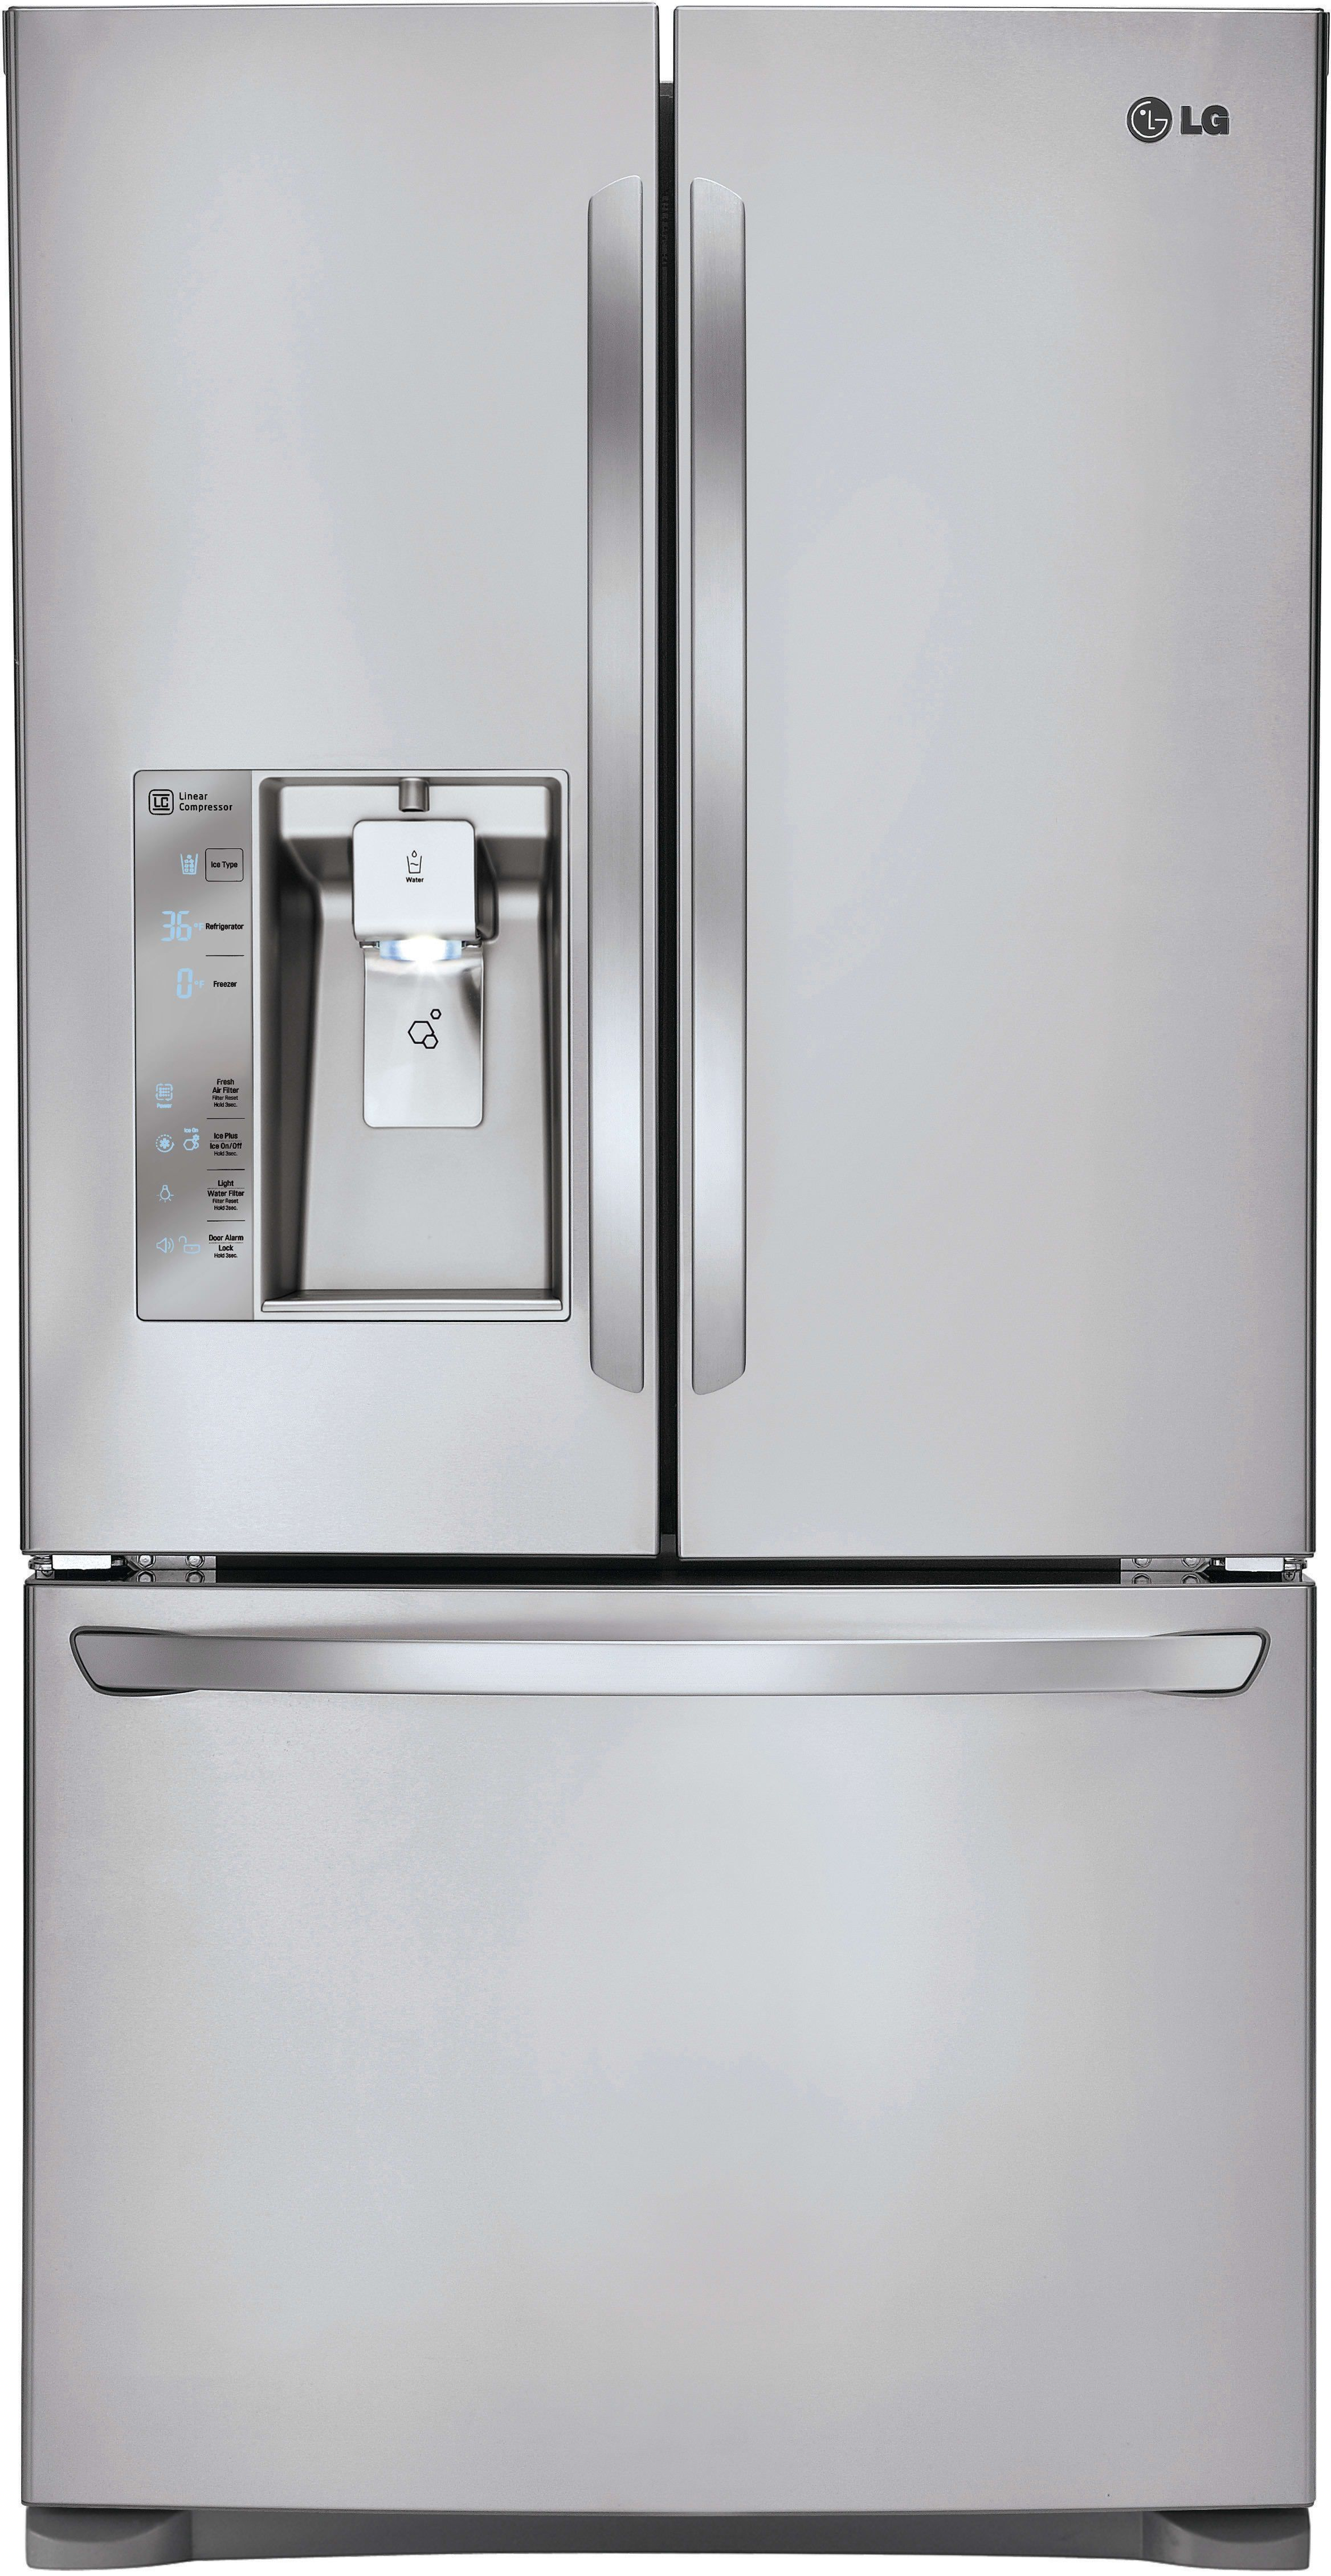 Lg lfxcs inch counter depth french door refrigerator with